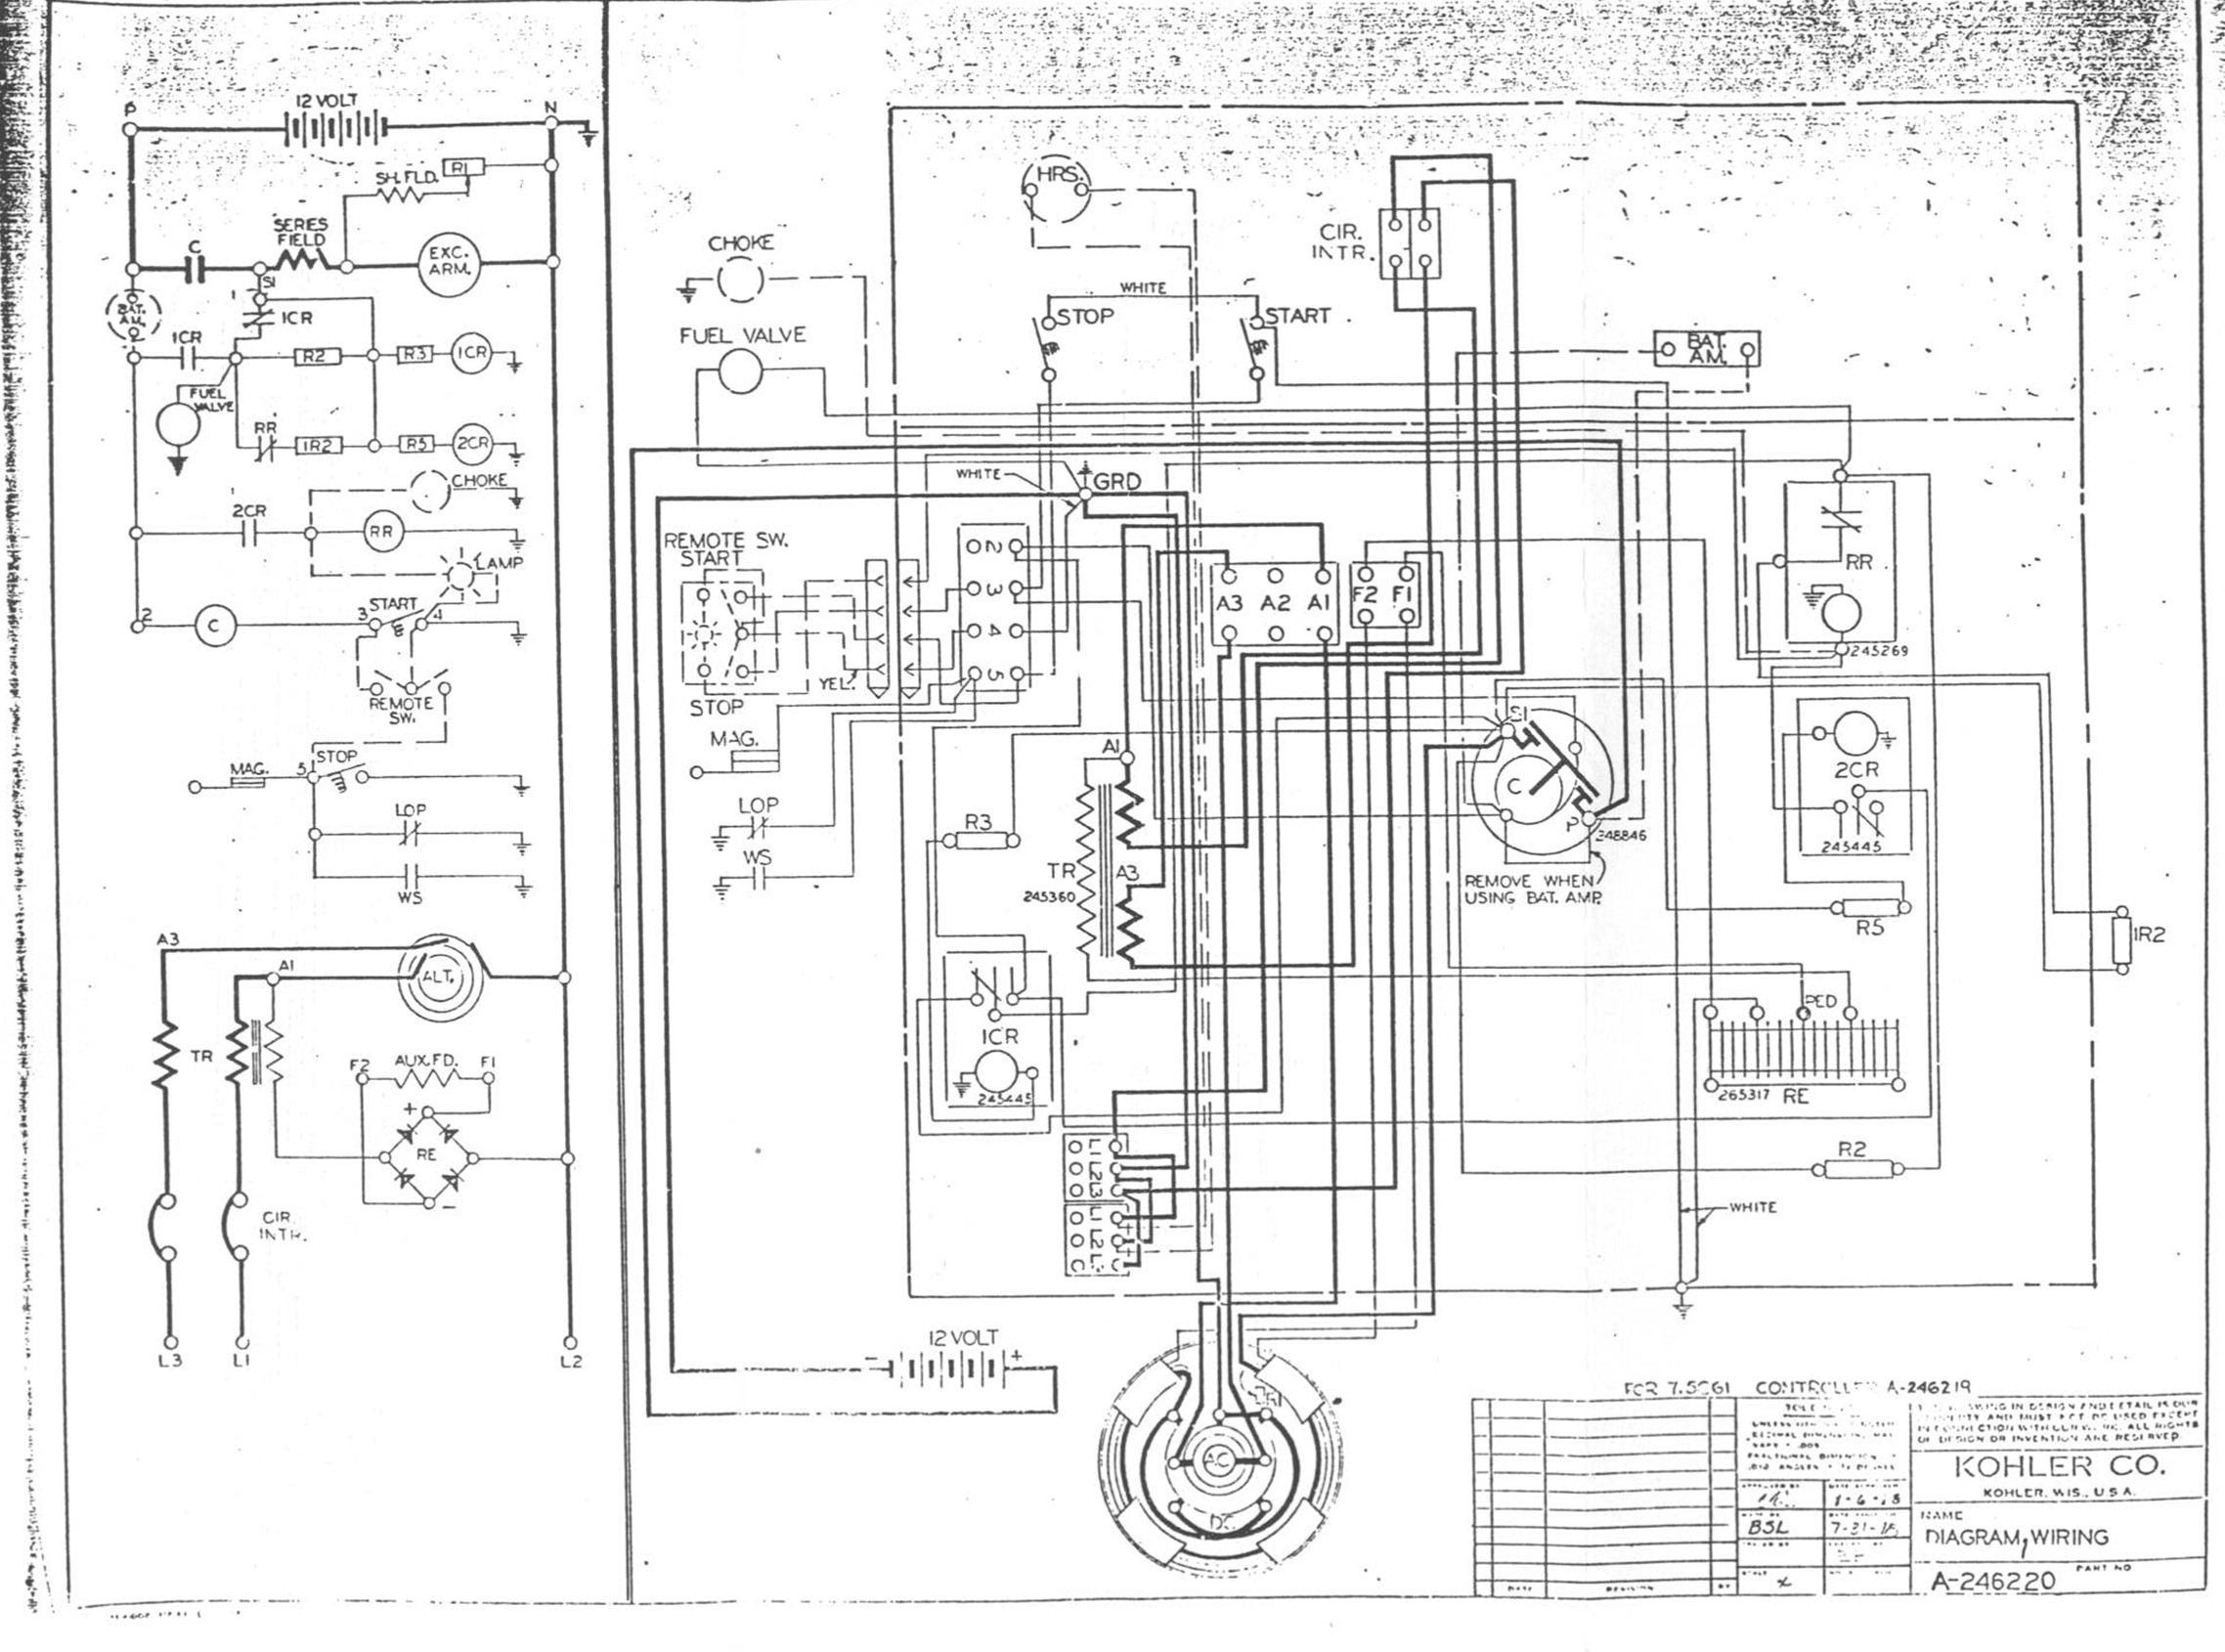 kohler starter solenoid wiring diagram kohler perkins genset engine kohler manuals and information on kohler starter solenoid wiring diagram